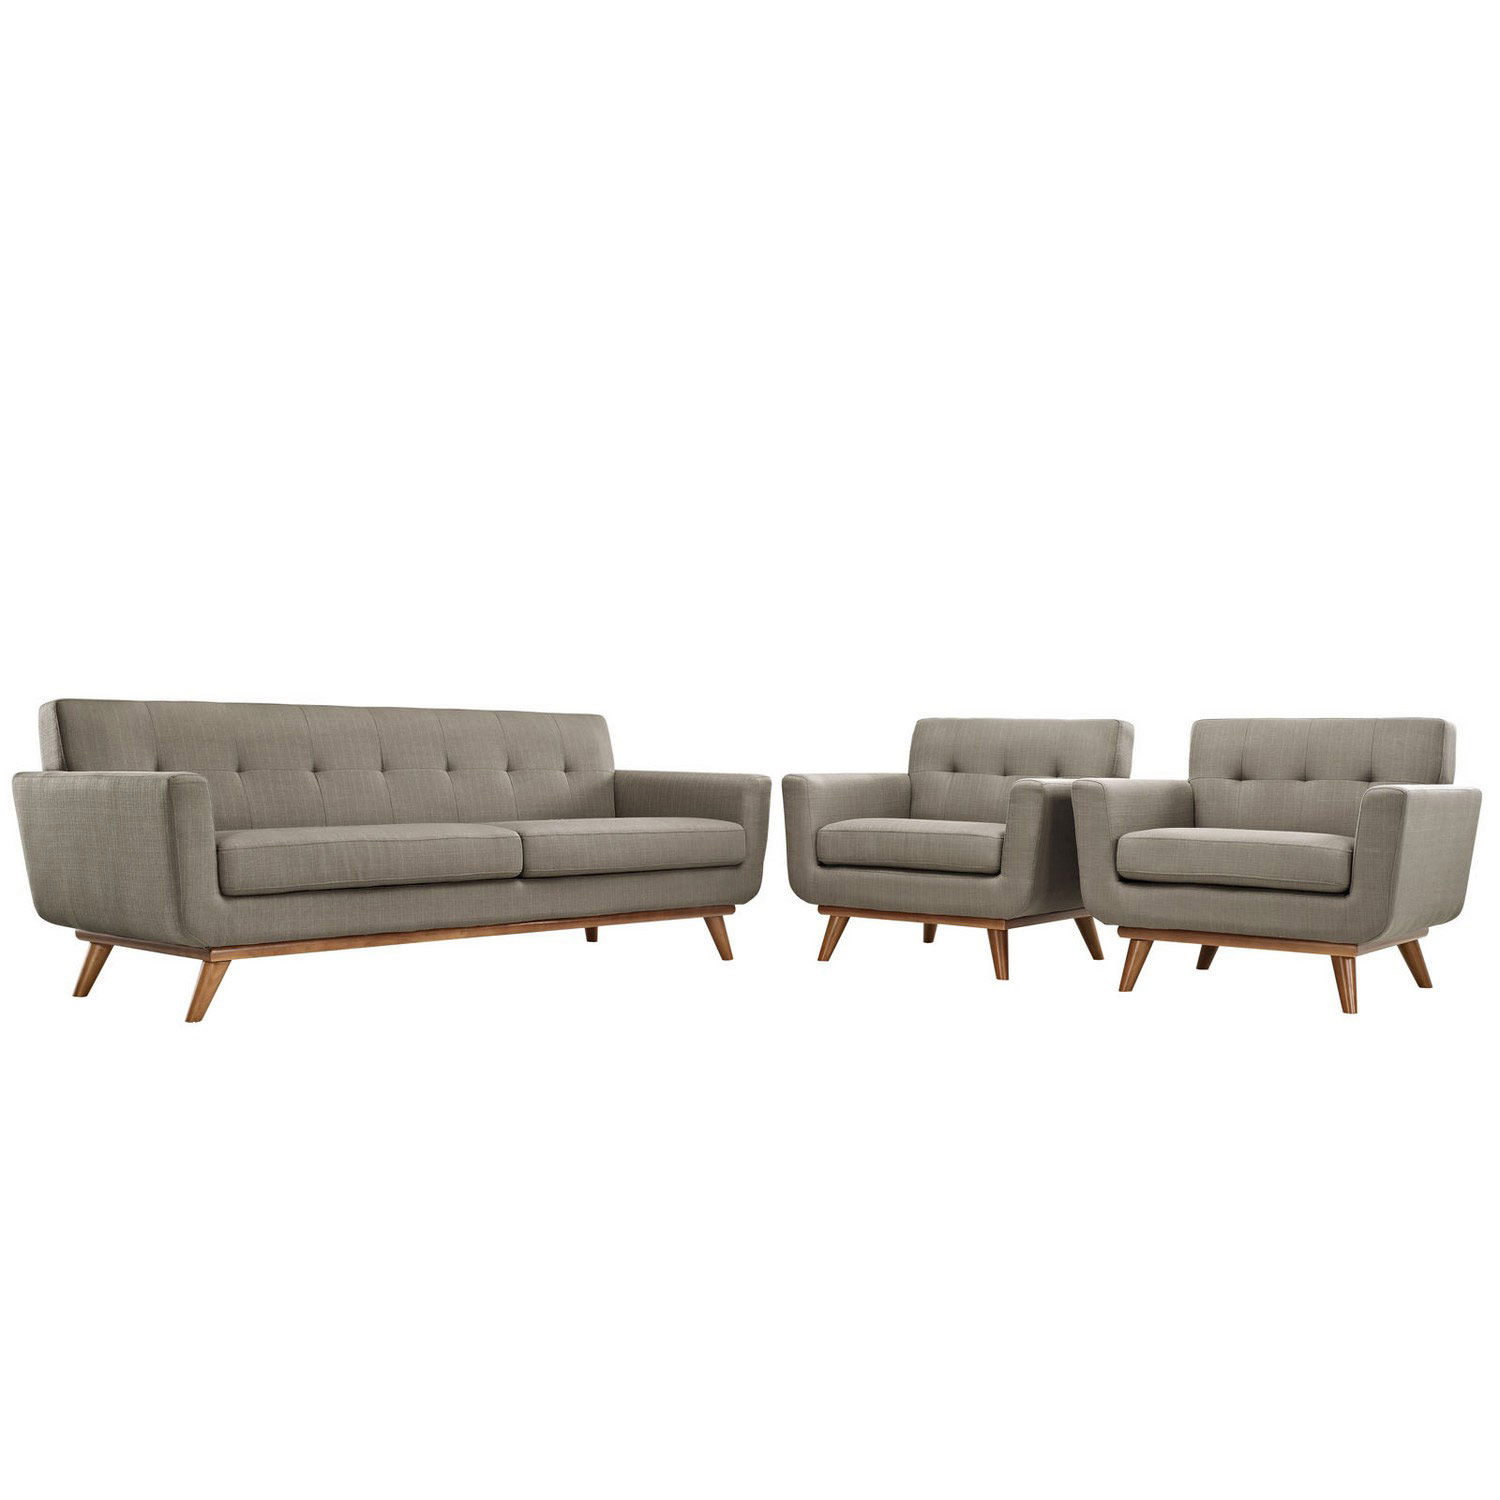 Modway Engage Armchairs and Sofa Set of 3 - Granite